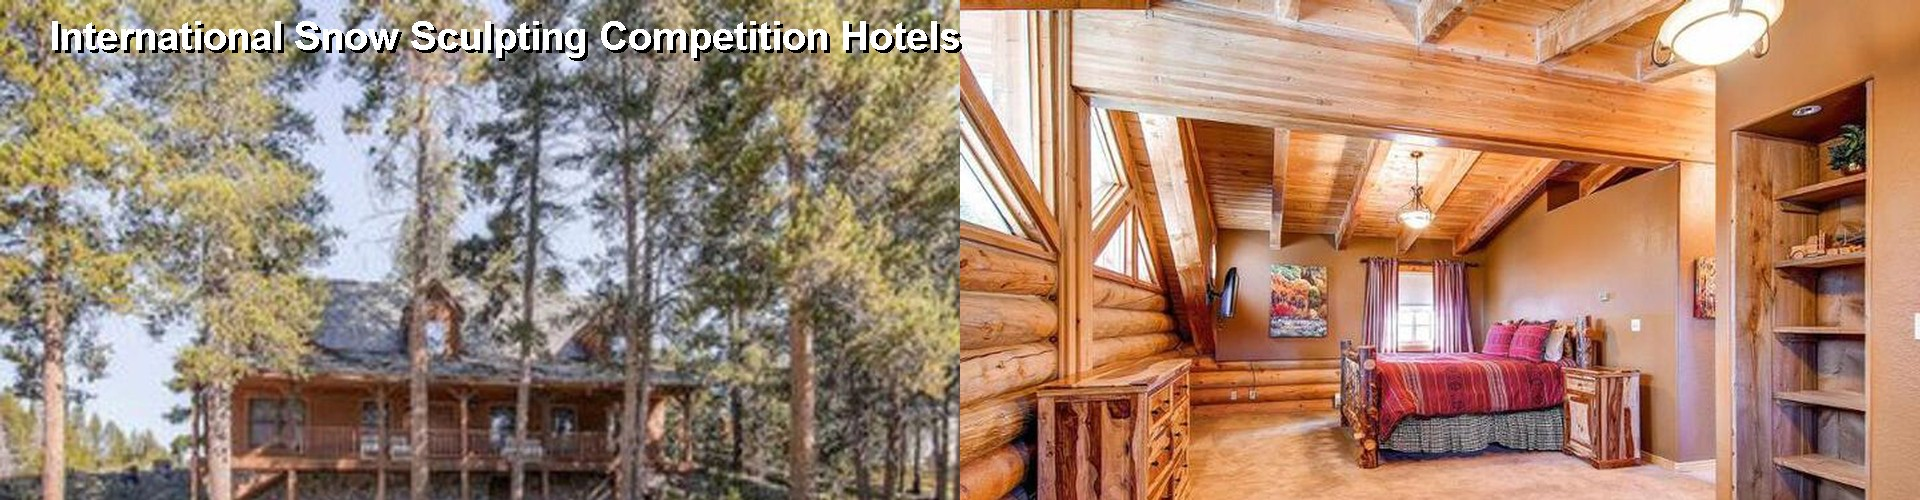 5 Best Hotels near International Snow Sculpting Competition